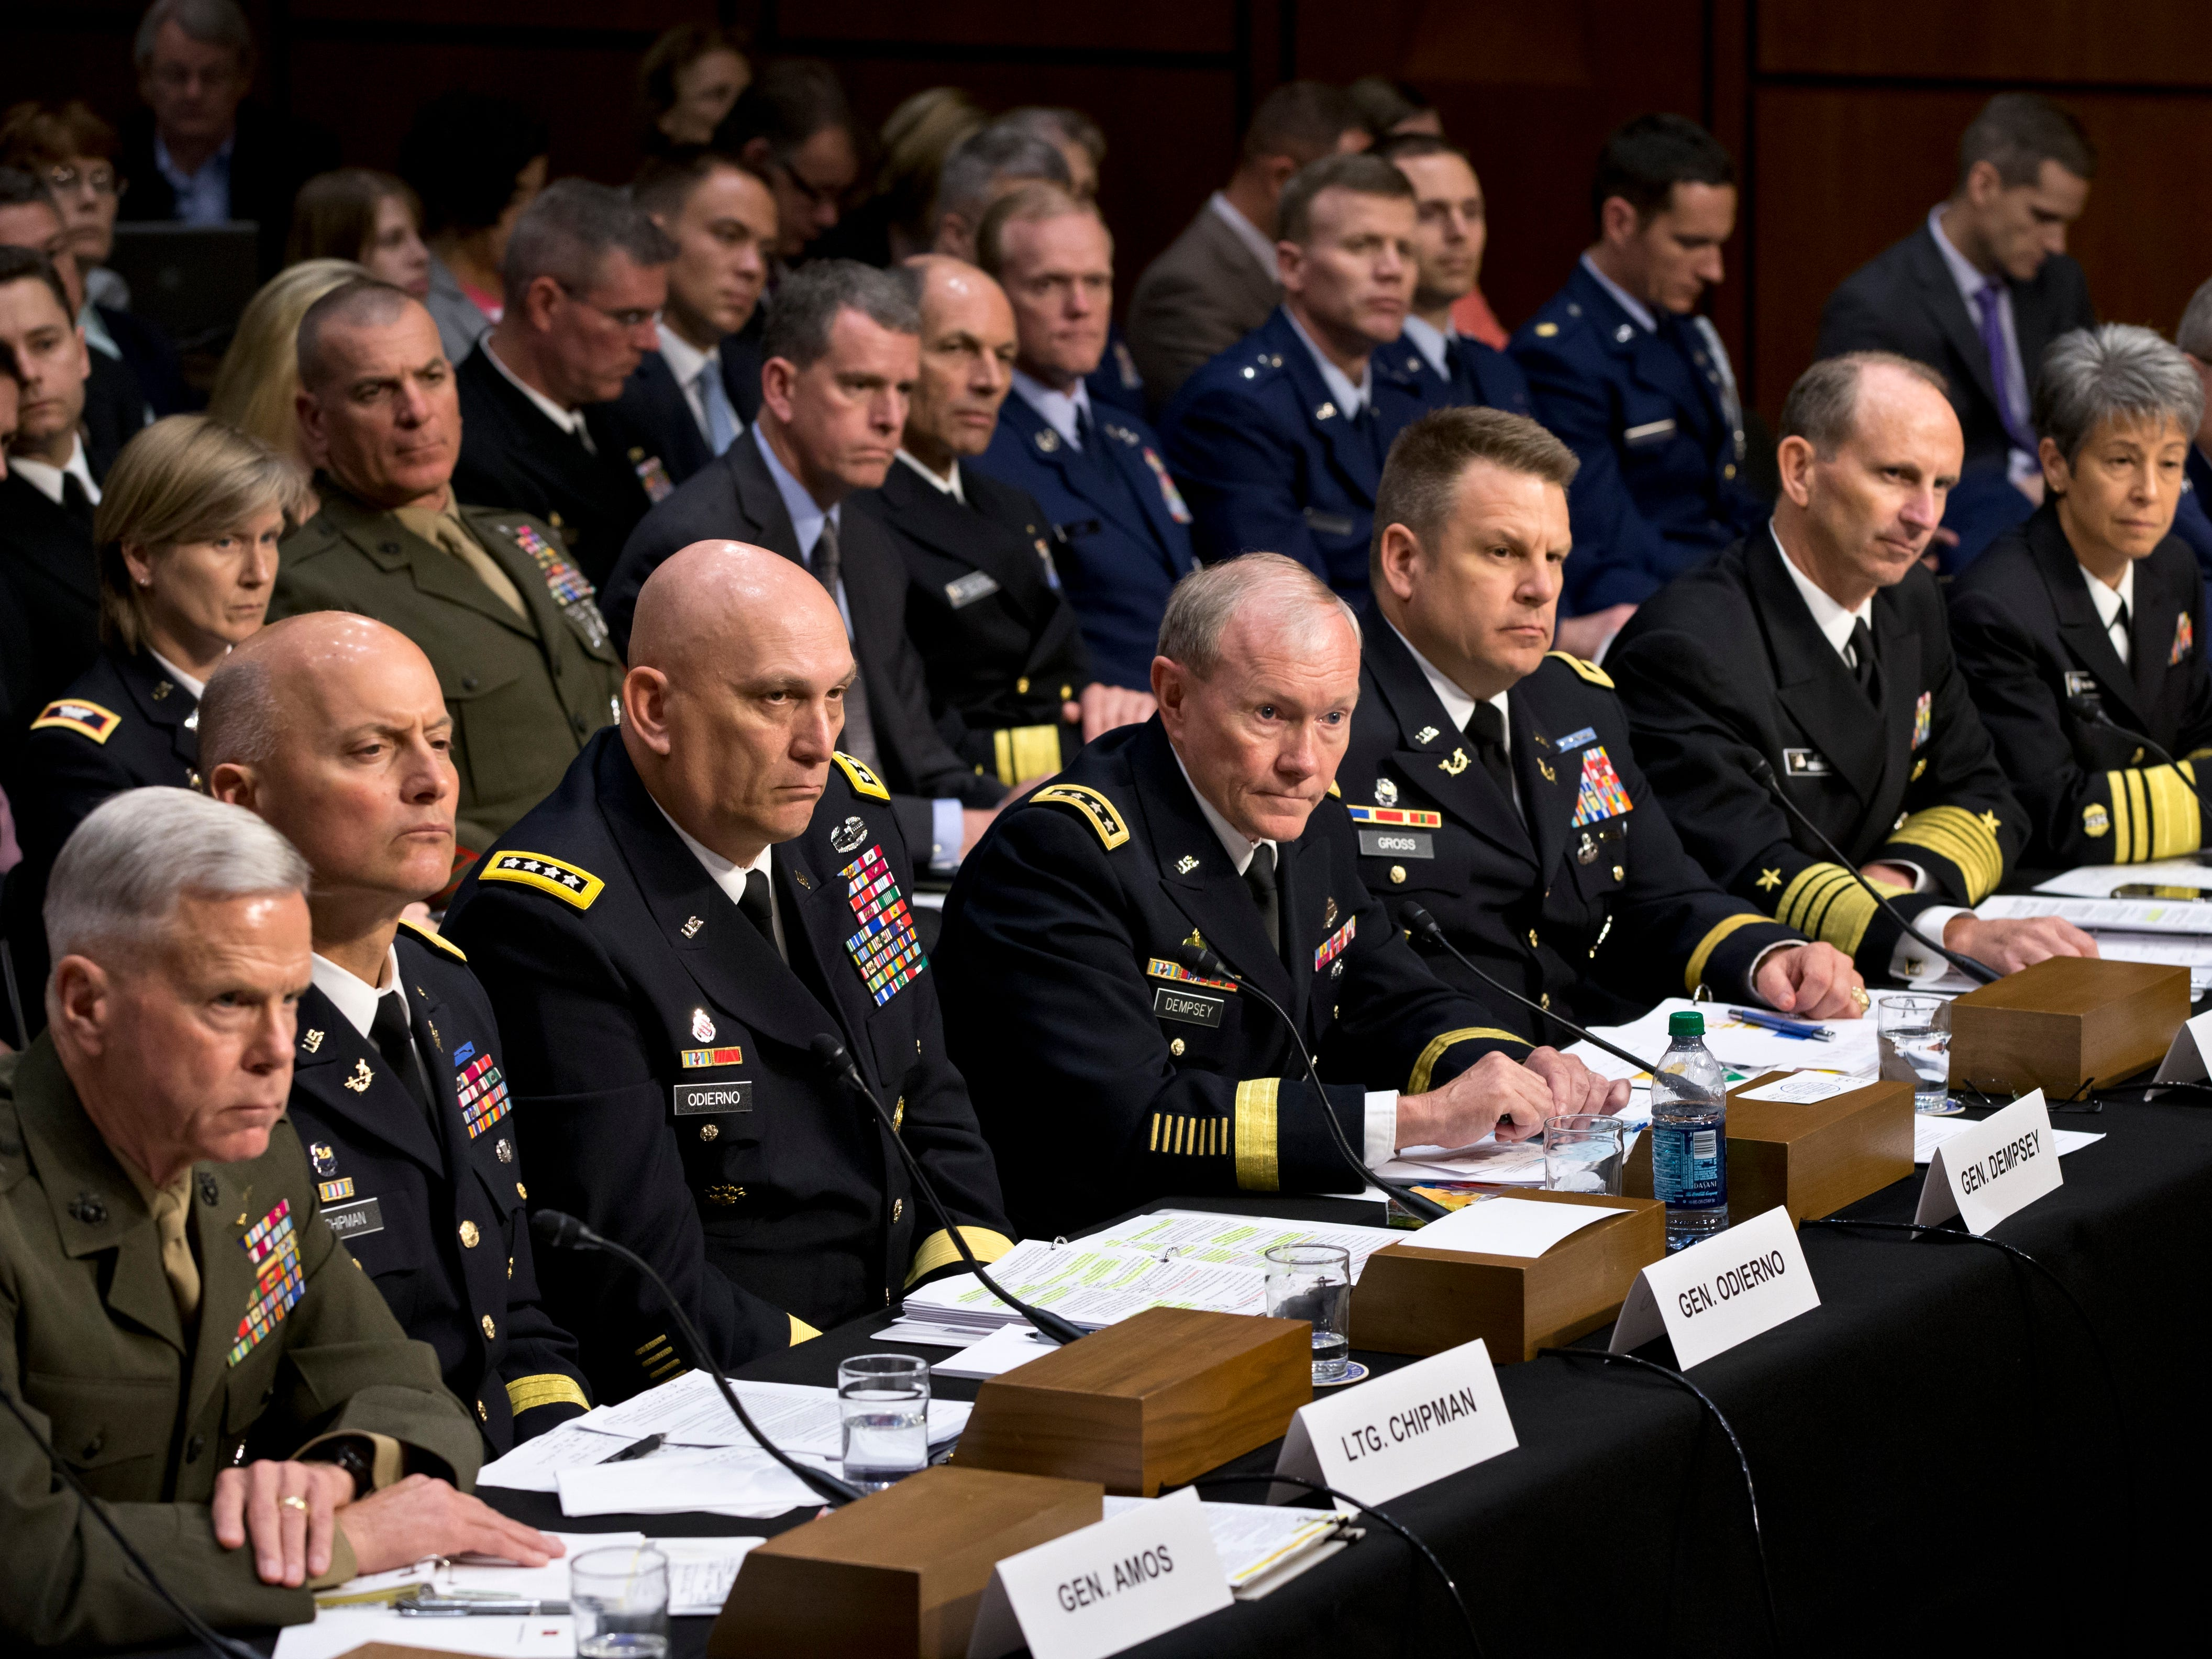 Military sexual assaults spiked in 2018, and that means leaders are still failing to lead